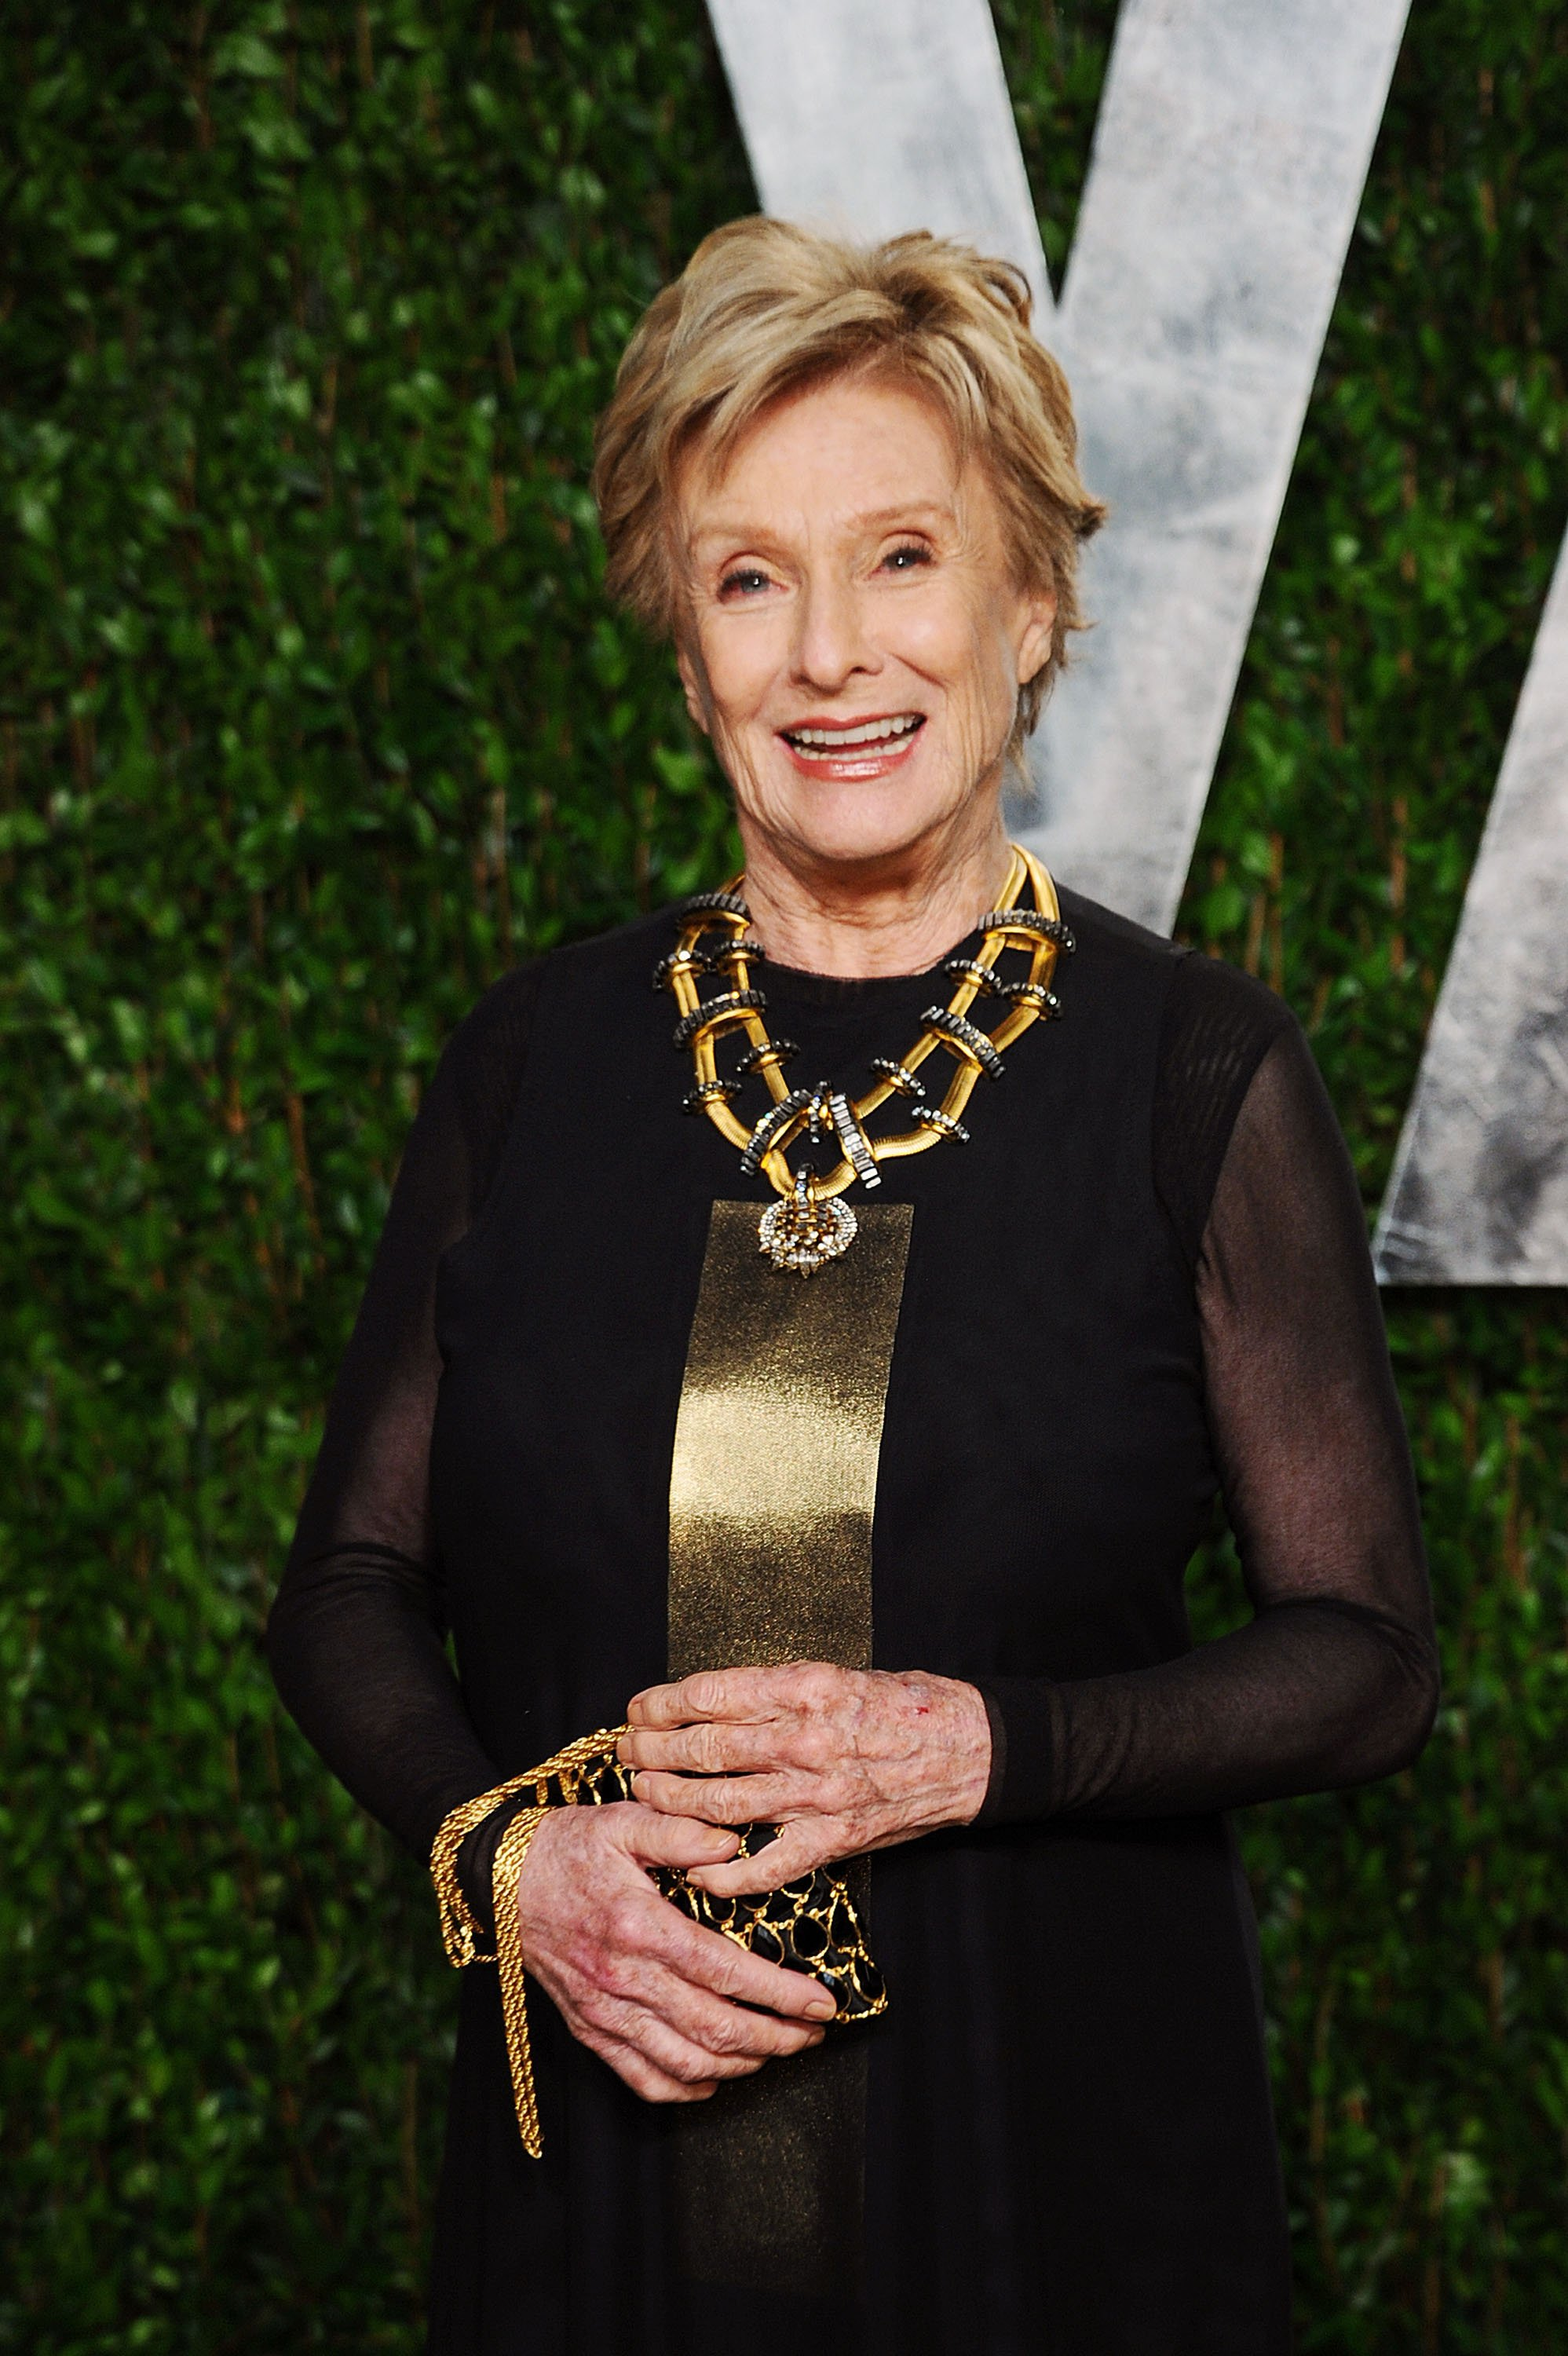 Cloris Leachman arrives at the 2012 Vanity Fair Oscar Party at Sunset Tower on February 26, 2012 in West Hollywood, California | Photo: Getty Images